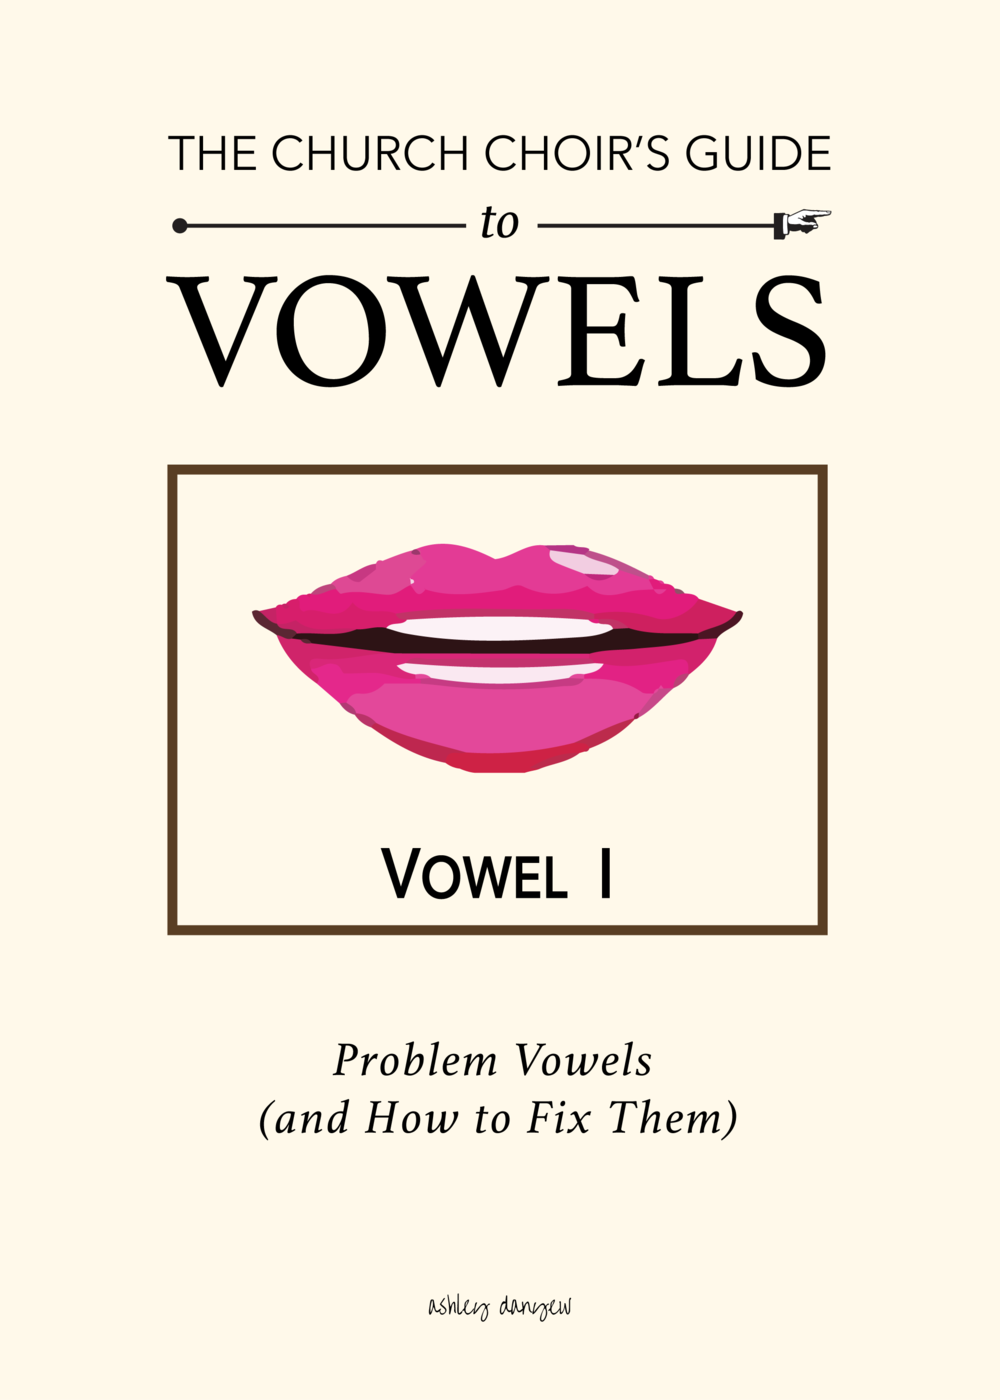 Copy of The Church Choir's Guide to Vowels - Part II